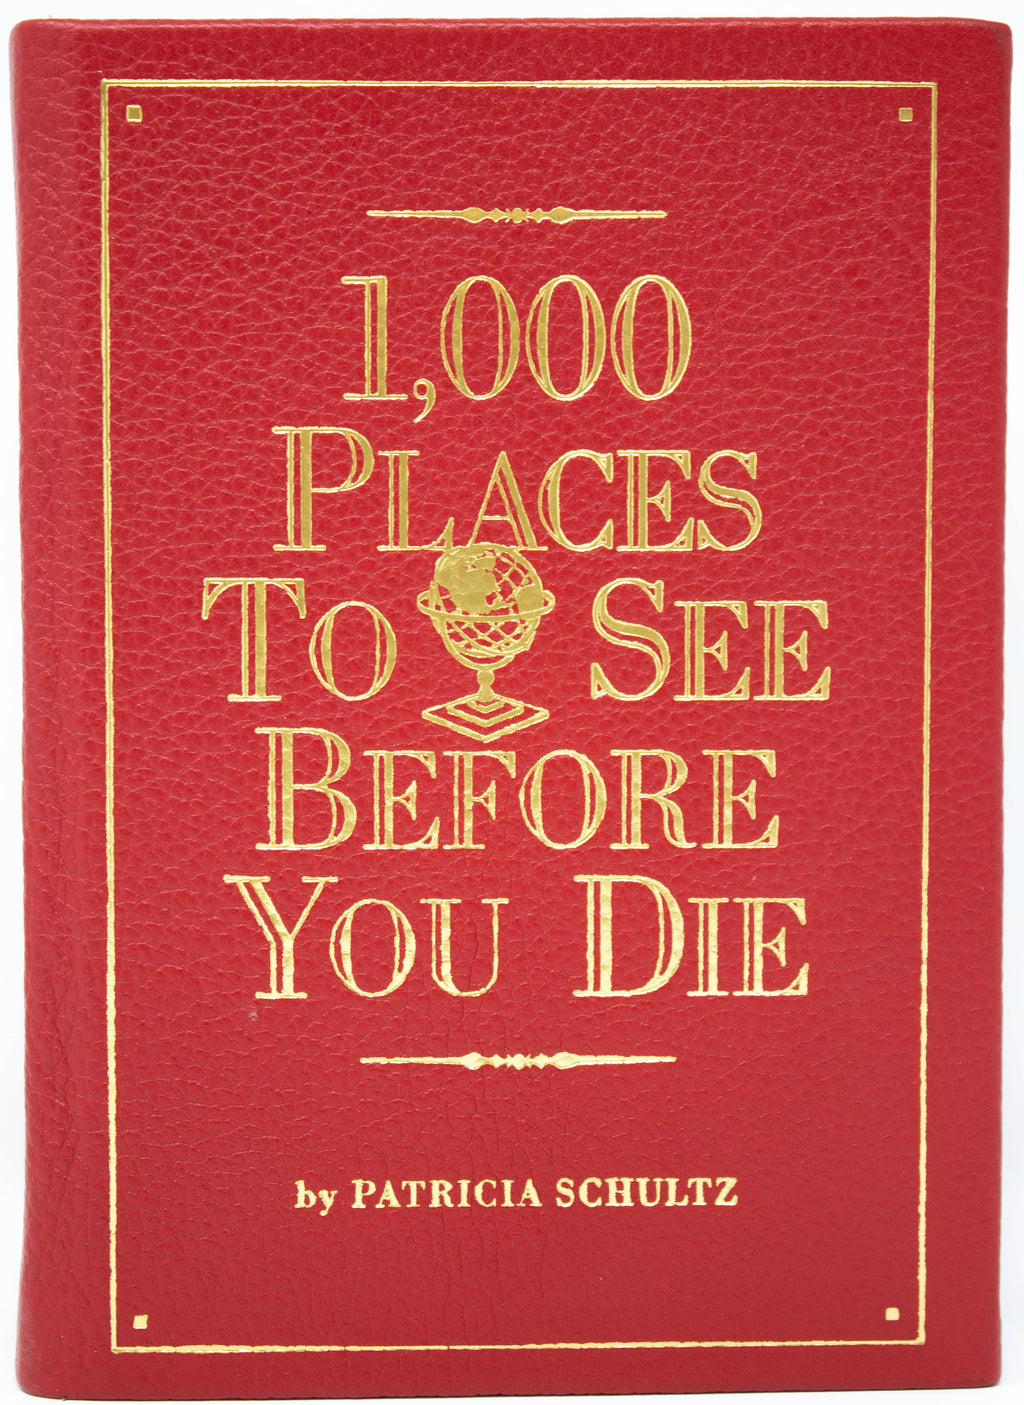 1000 Places to See Before You Die (leather bound)